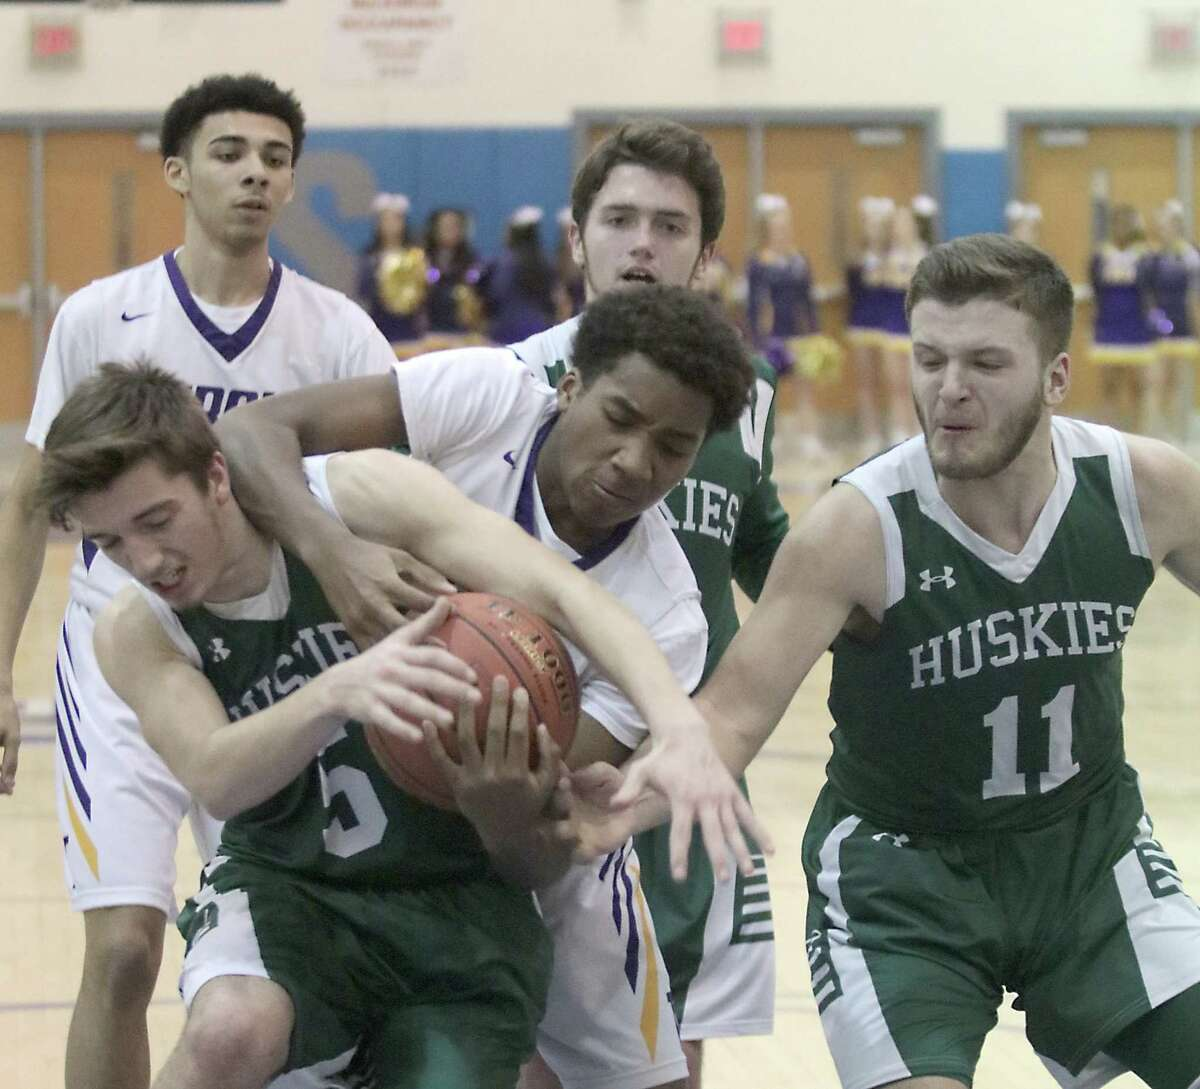 Franklin's Hunter Swan battles for possession with Troy's Jadon Cummings during the Class A state regional basketball playoff game at Saratoga Springs High School Wednesday, March 6, 2019. (Ed Burke photo-Special to The Times Union)